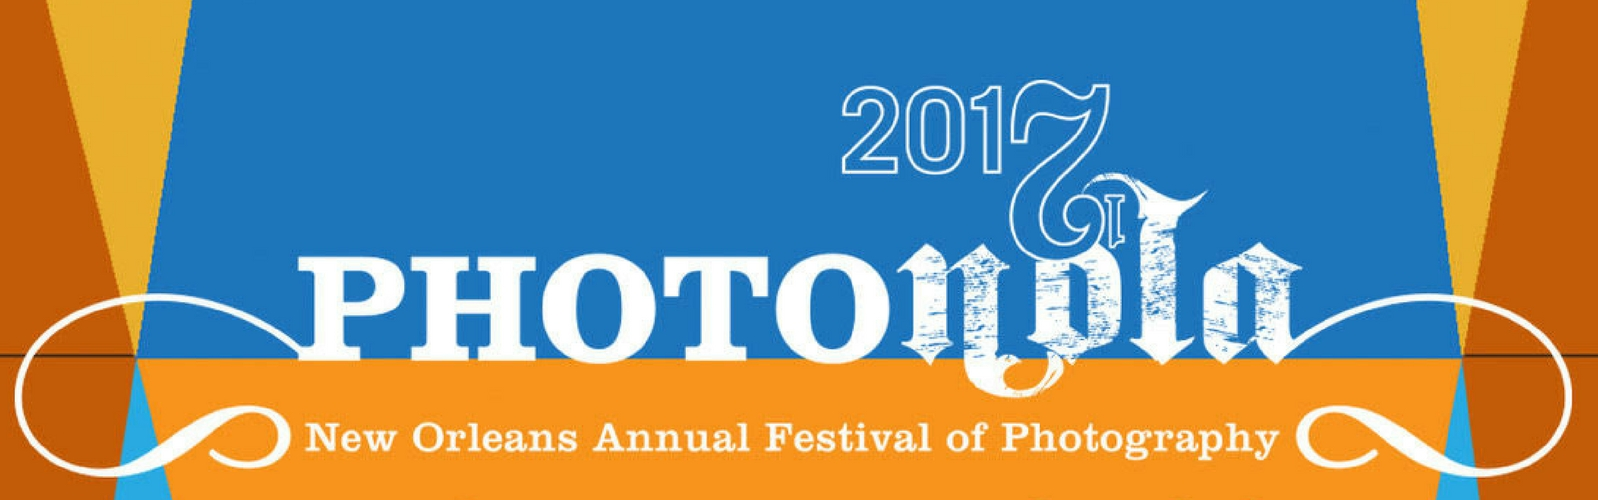 PhotoNOLA News